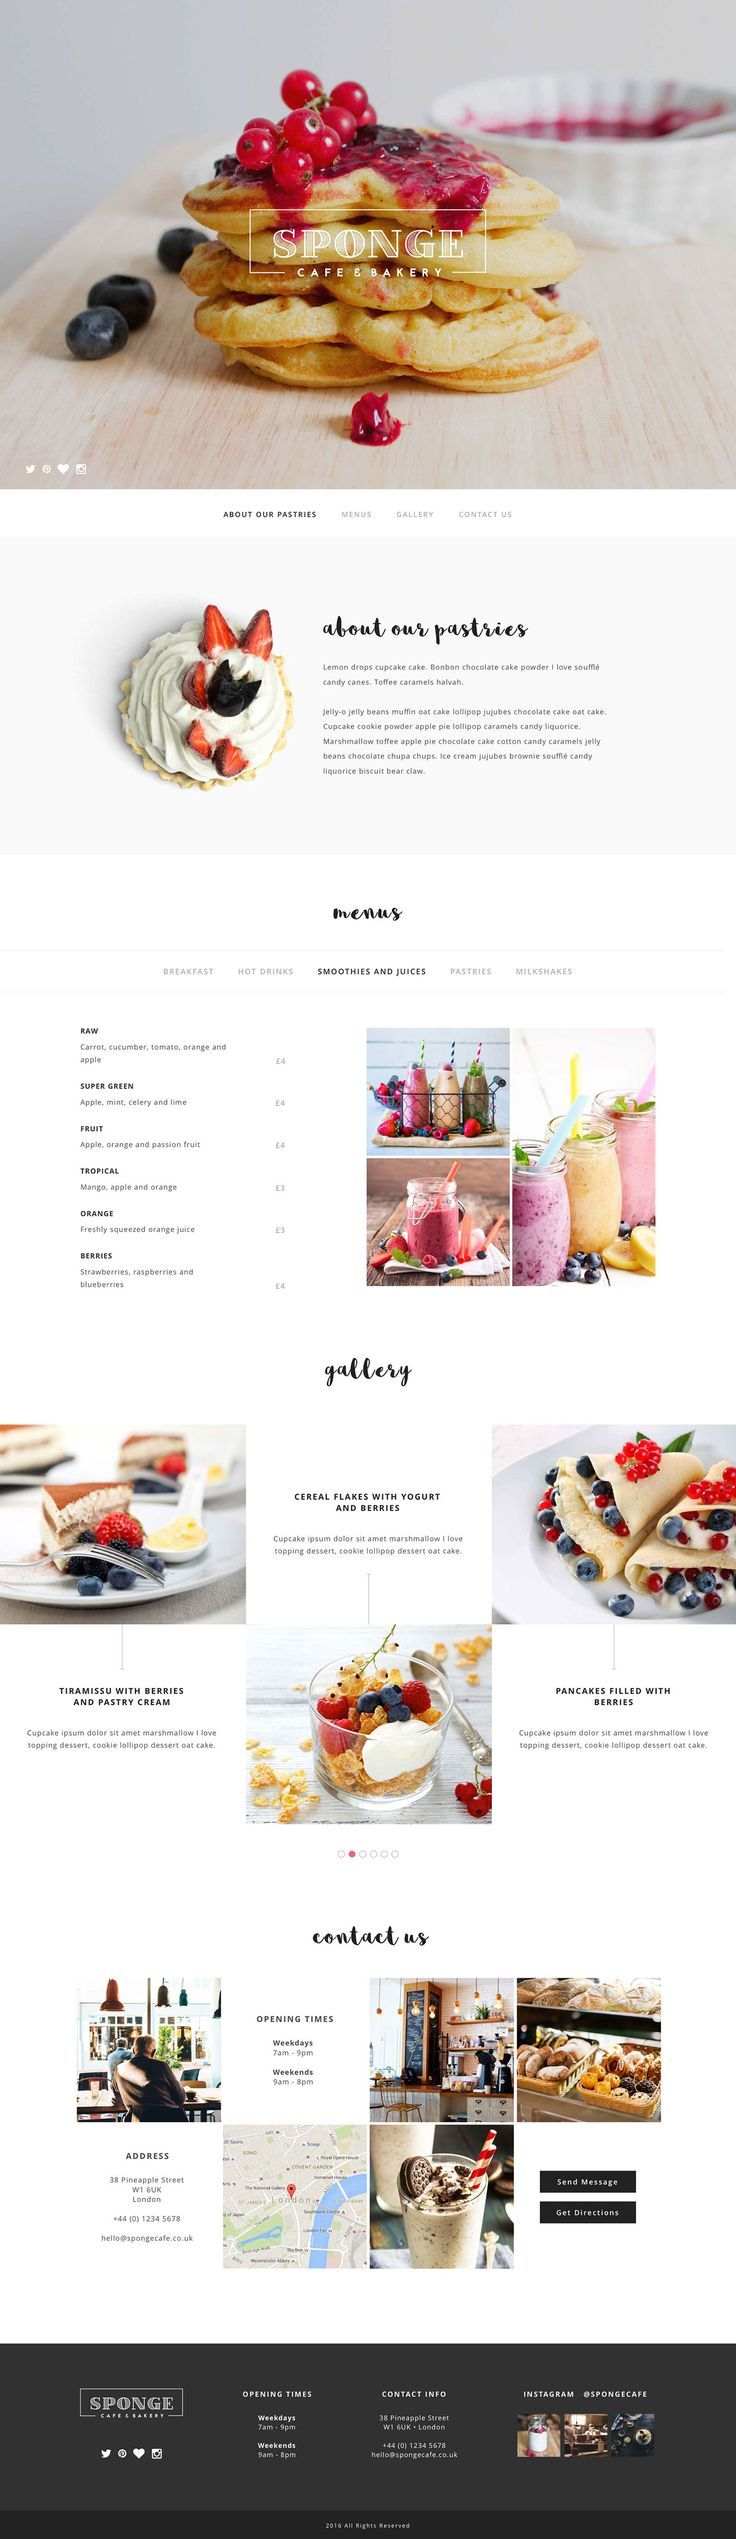 ideas about website creator app business cafe bakery stunning website concept